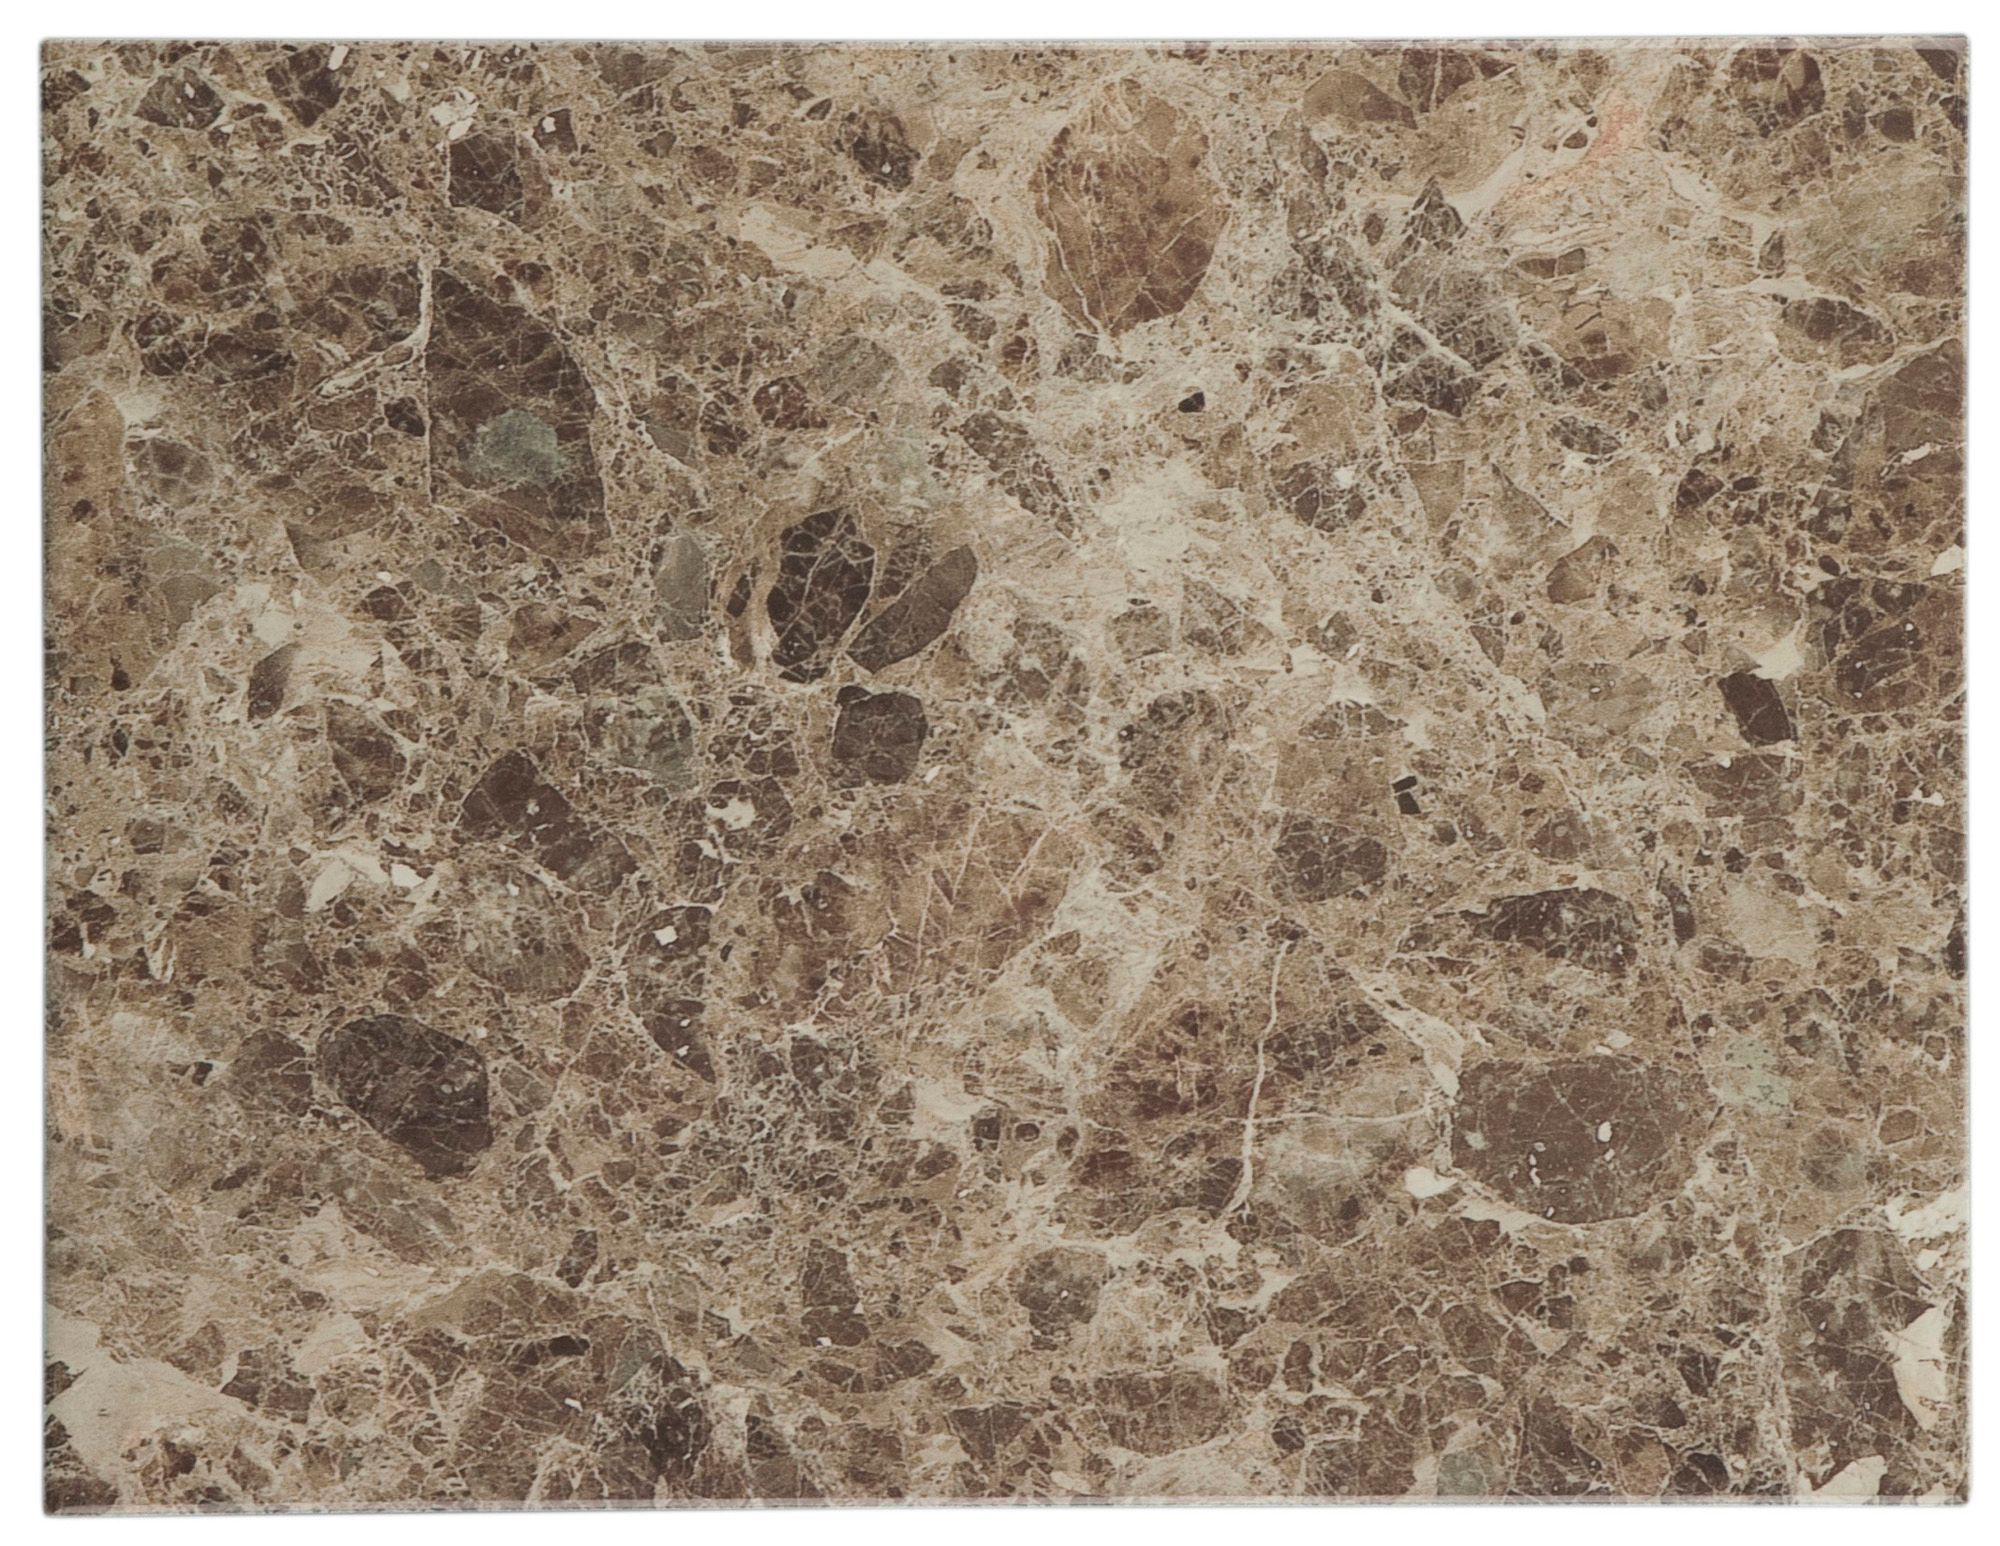 Illusion brown marble effect ceramic wall floor tile pack of 10 illusion brown marble effect ceramic wall floor tile pack of bq for all your home and garden supplies and advice on all the latest diy trends doublecrazyfo Images